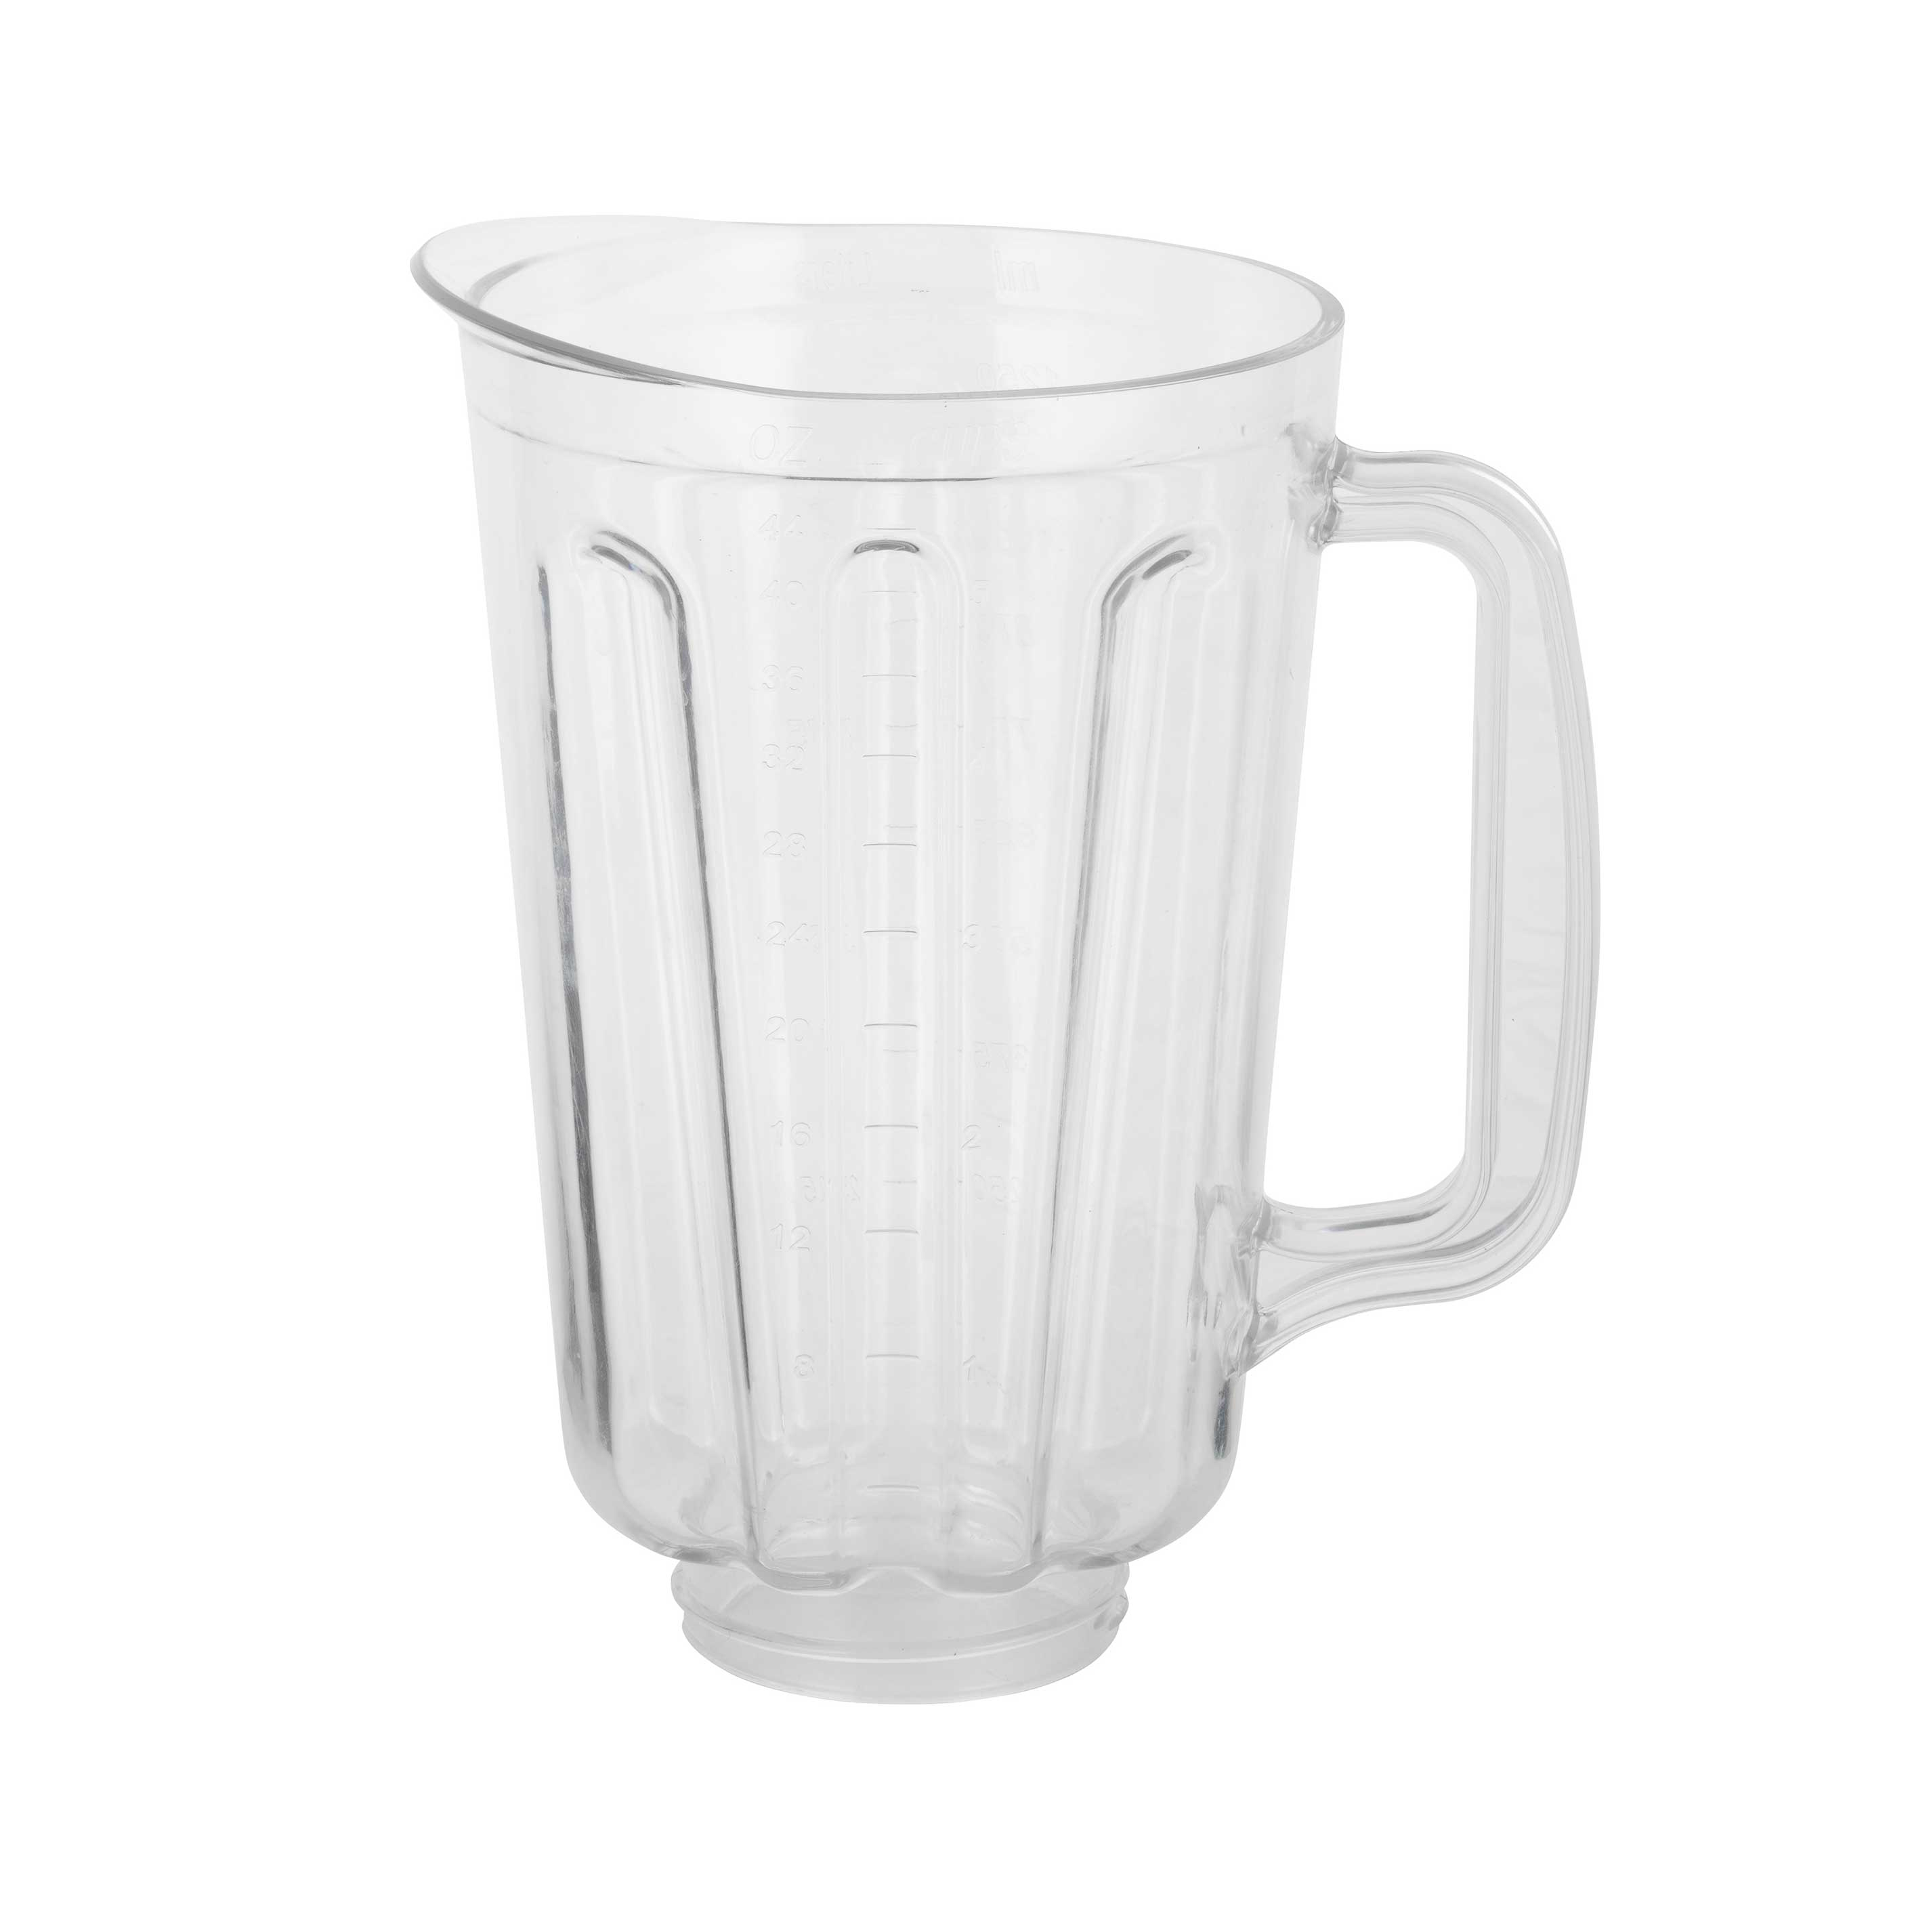 Winco XLB44-P3 blender container